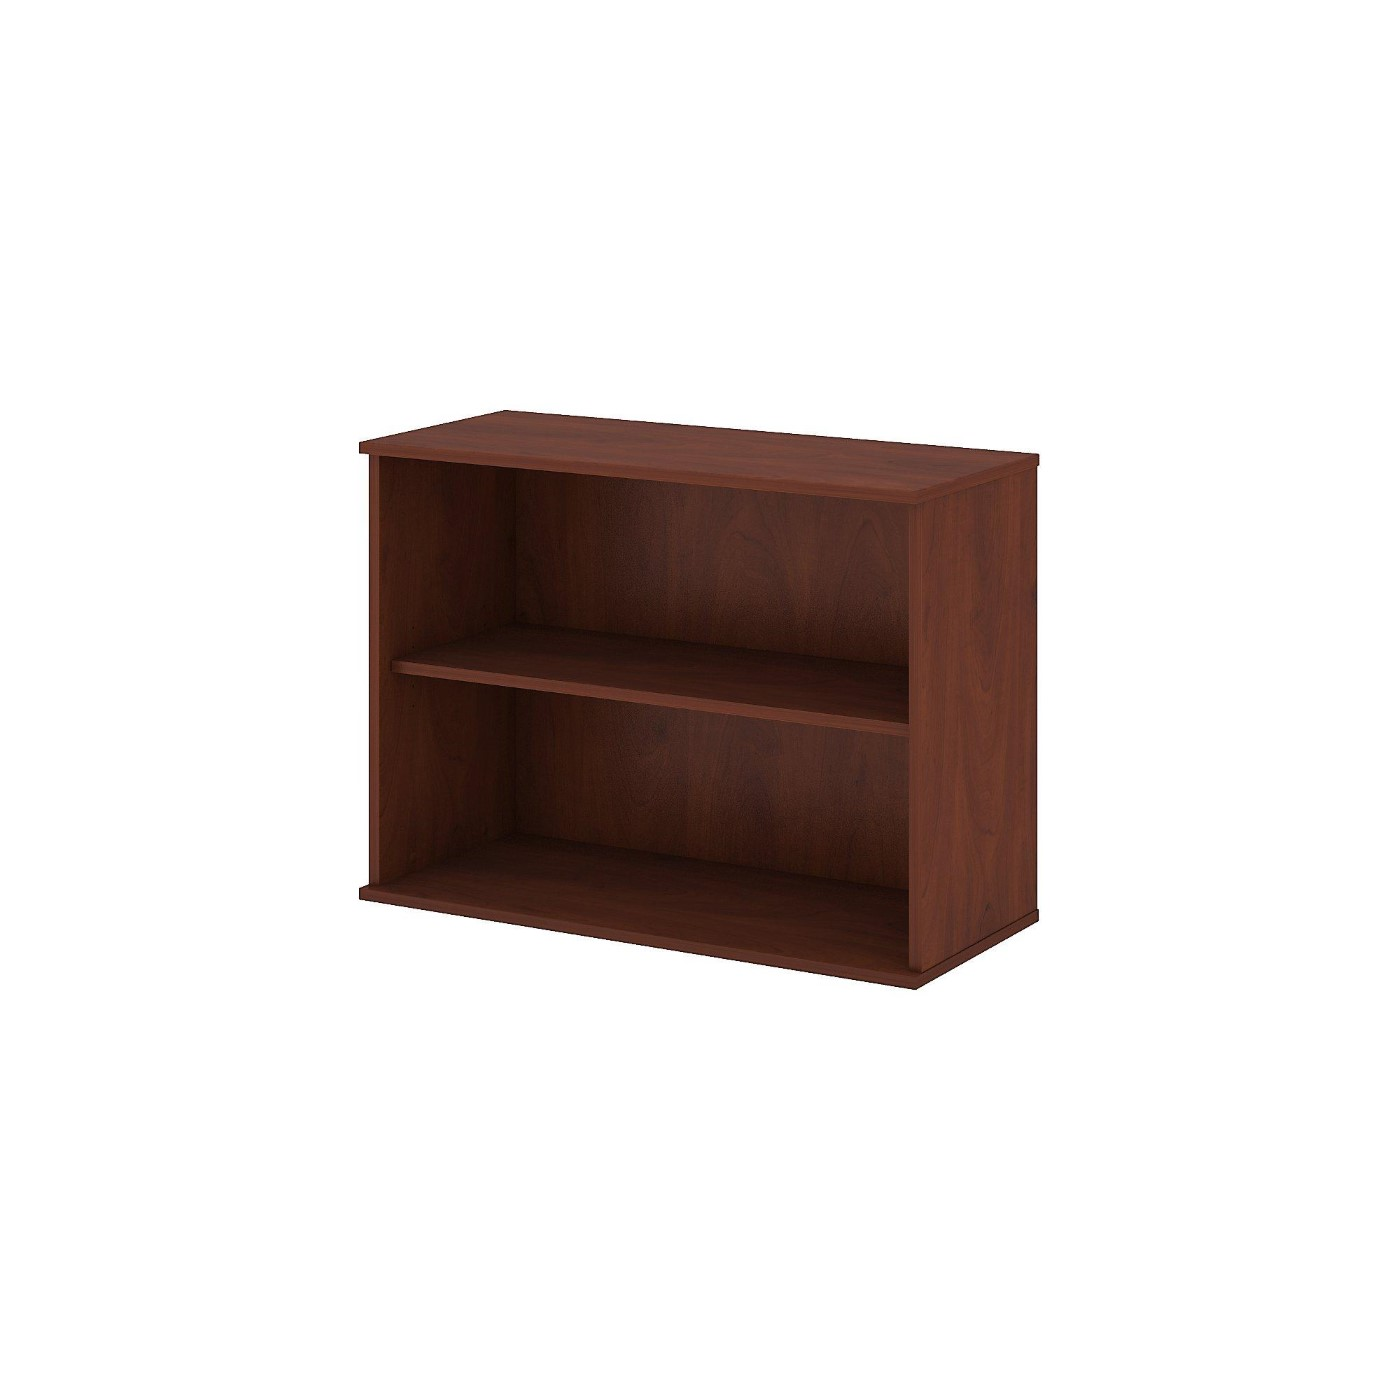 <font color=#c60><b>BUSH BUSINESS FURNITURE 30H 2 SHELF BOOKCASE. FREE SHIPPING</font></b>